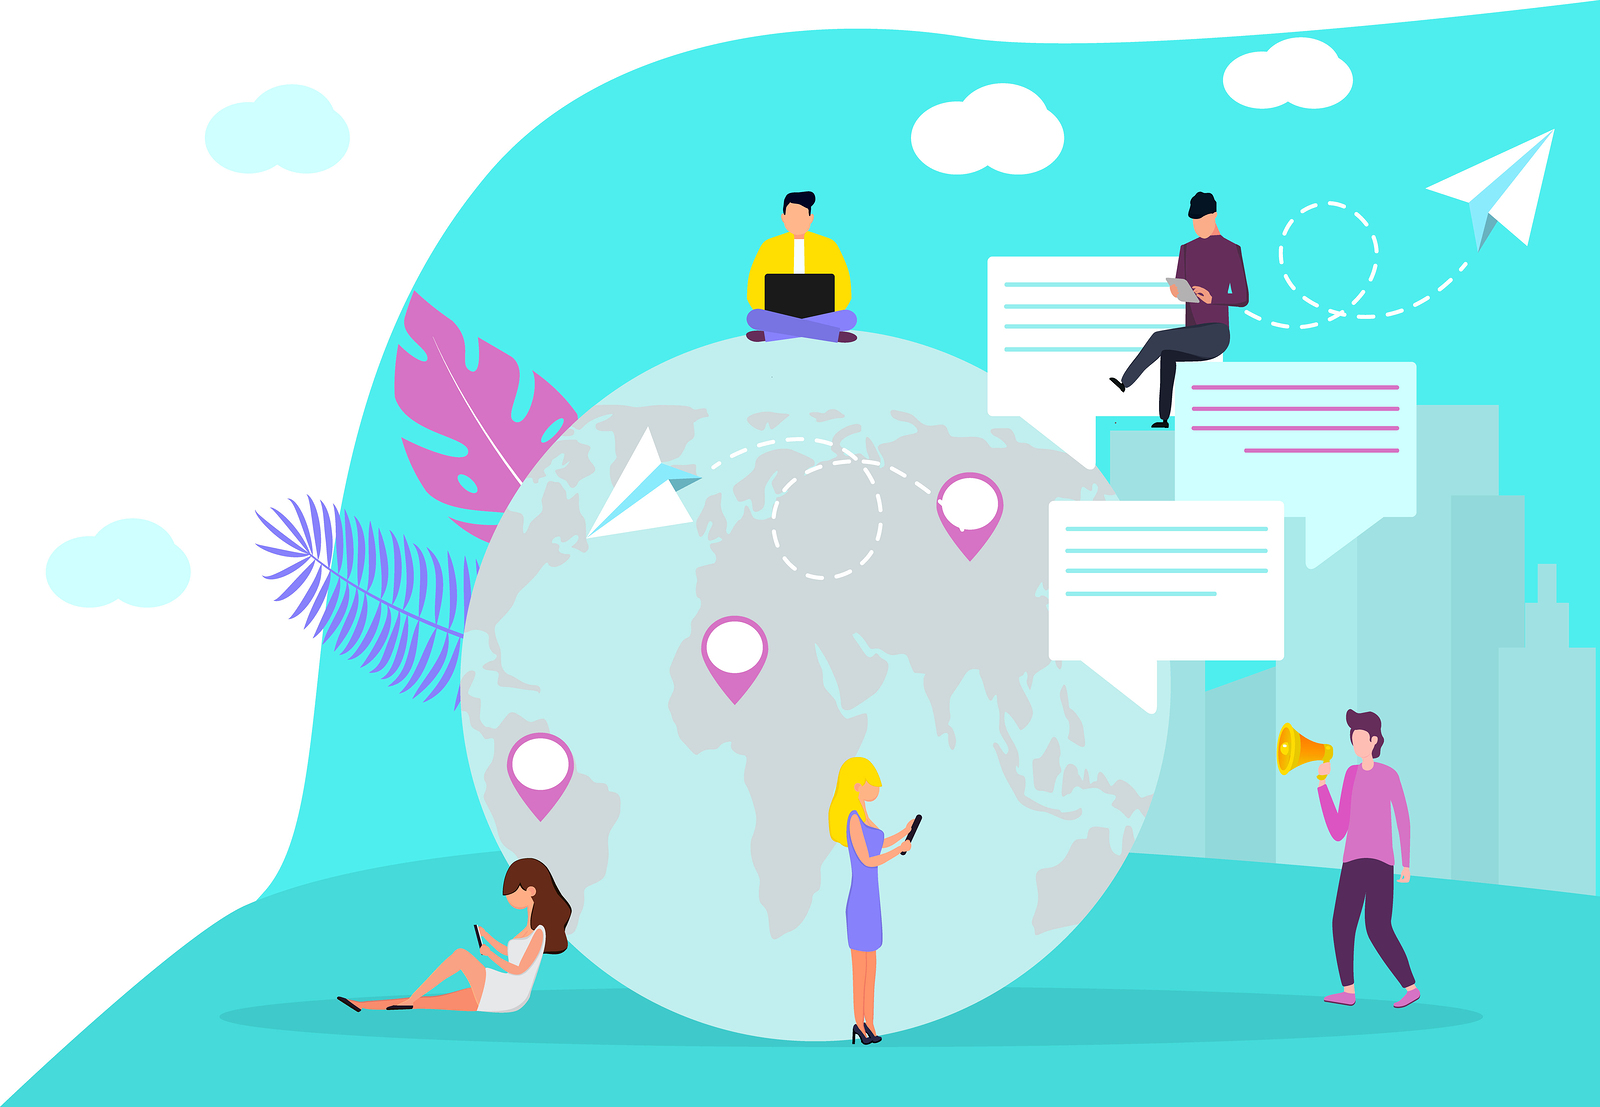 Globalisation flat vector, people around the globe connection concept. International business network relationships. World wide web internet technology